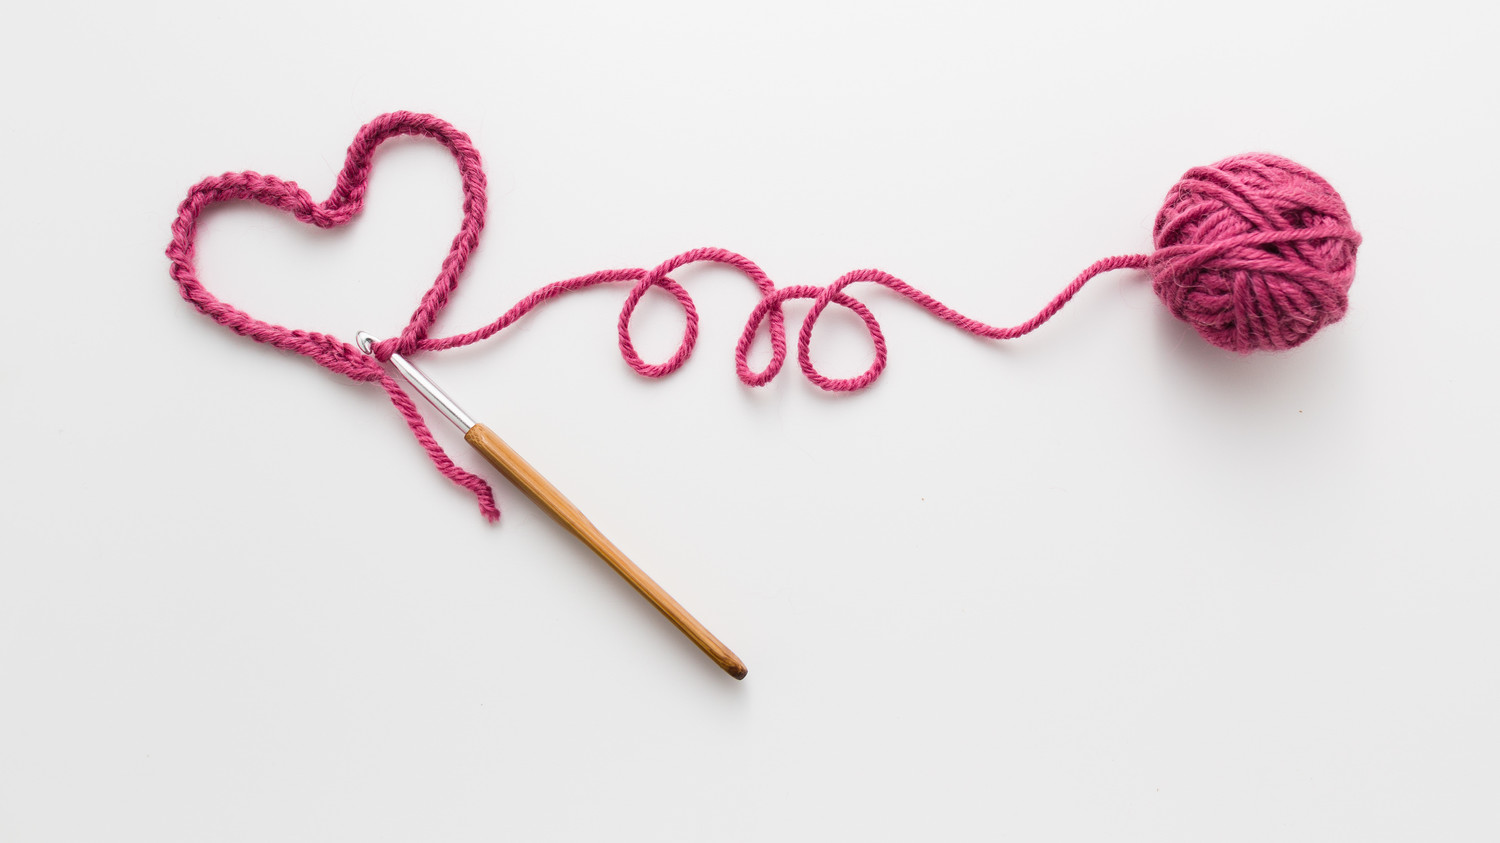 Knitting Or Crocheting For Charity : Ways to knit or crochet for charity martha stewart